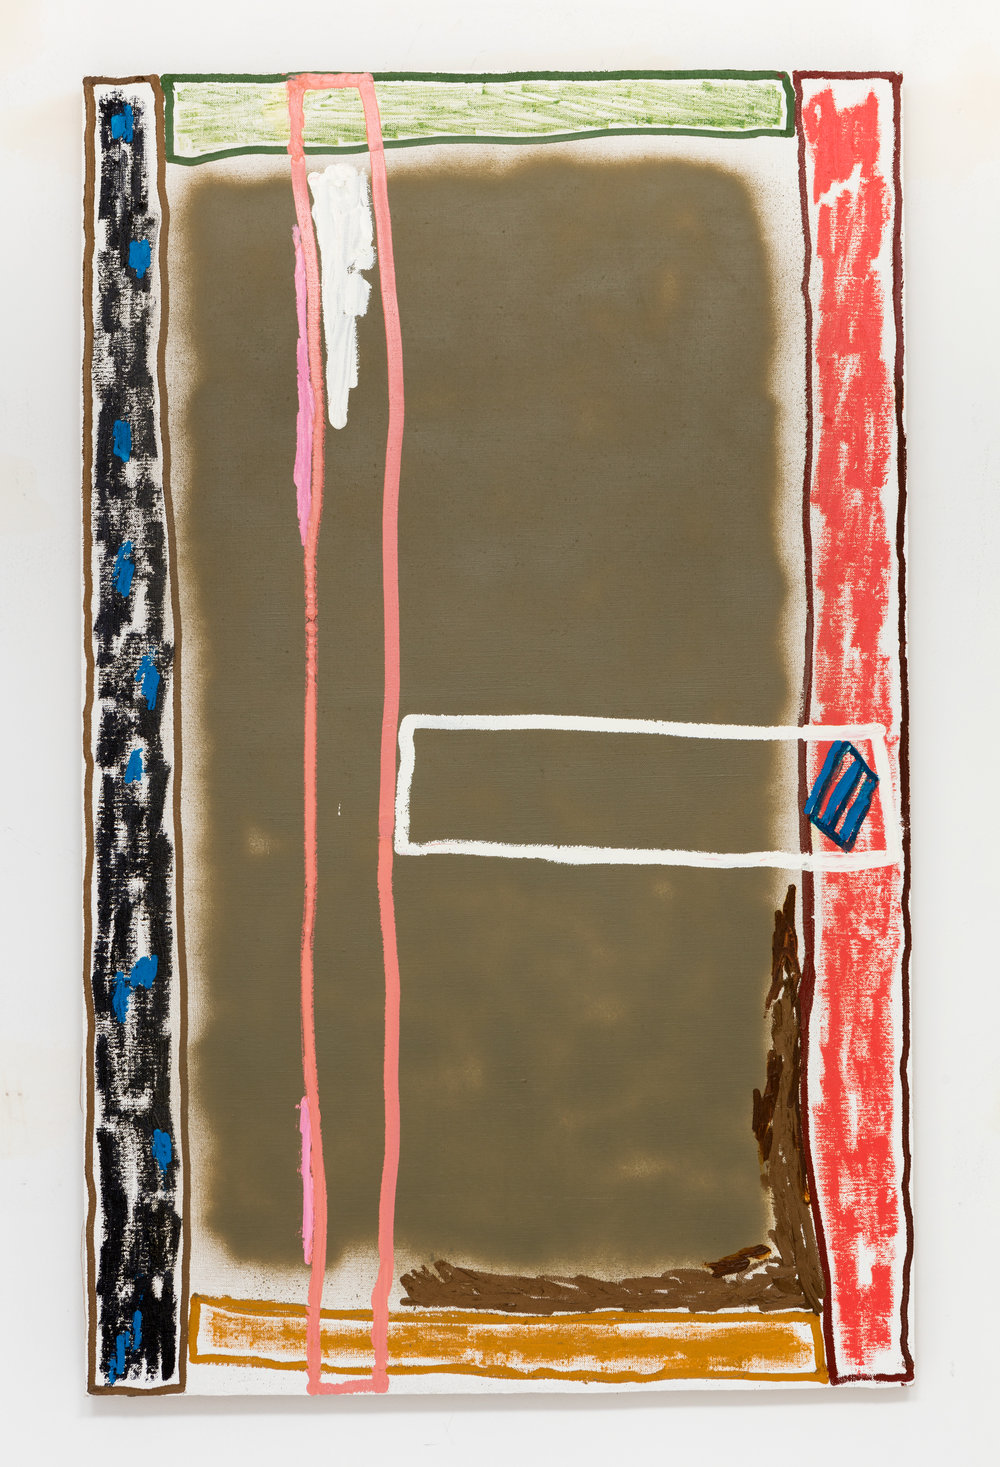 Michael Frank Blair, Untitled 11 (2016), Oil and mixed media on linen, 48 x 30 inches